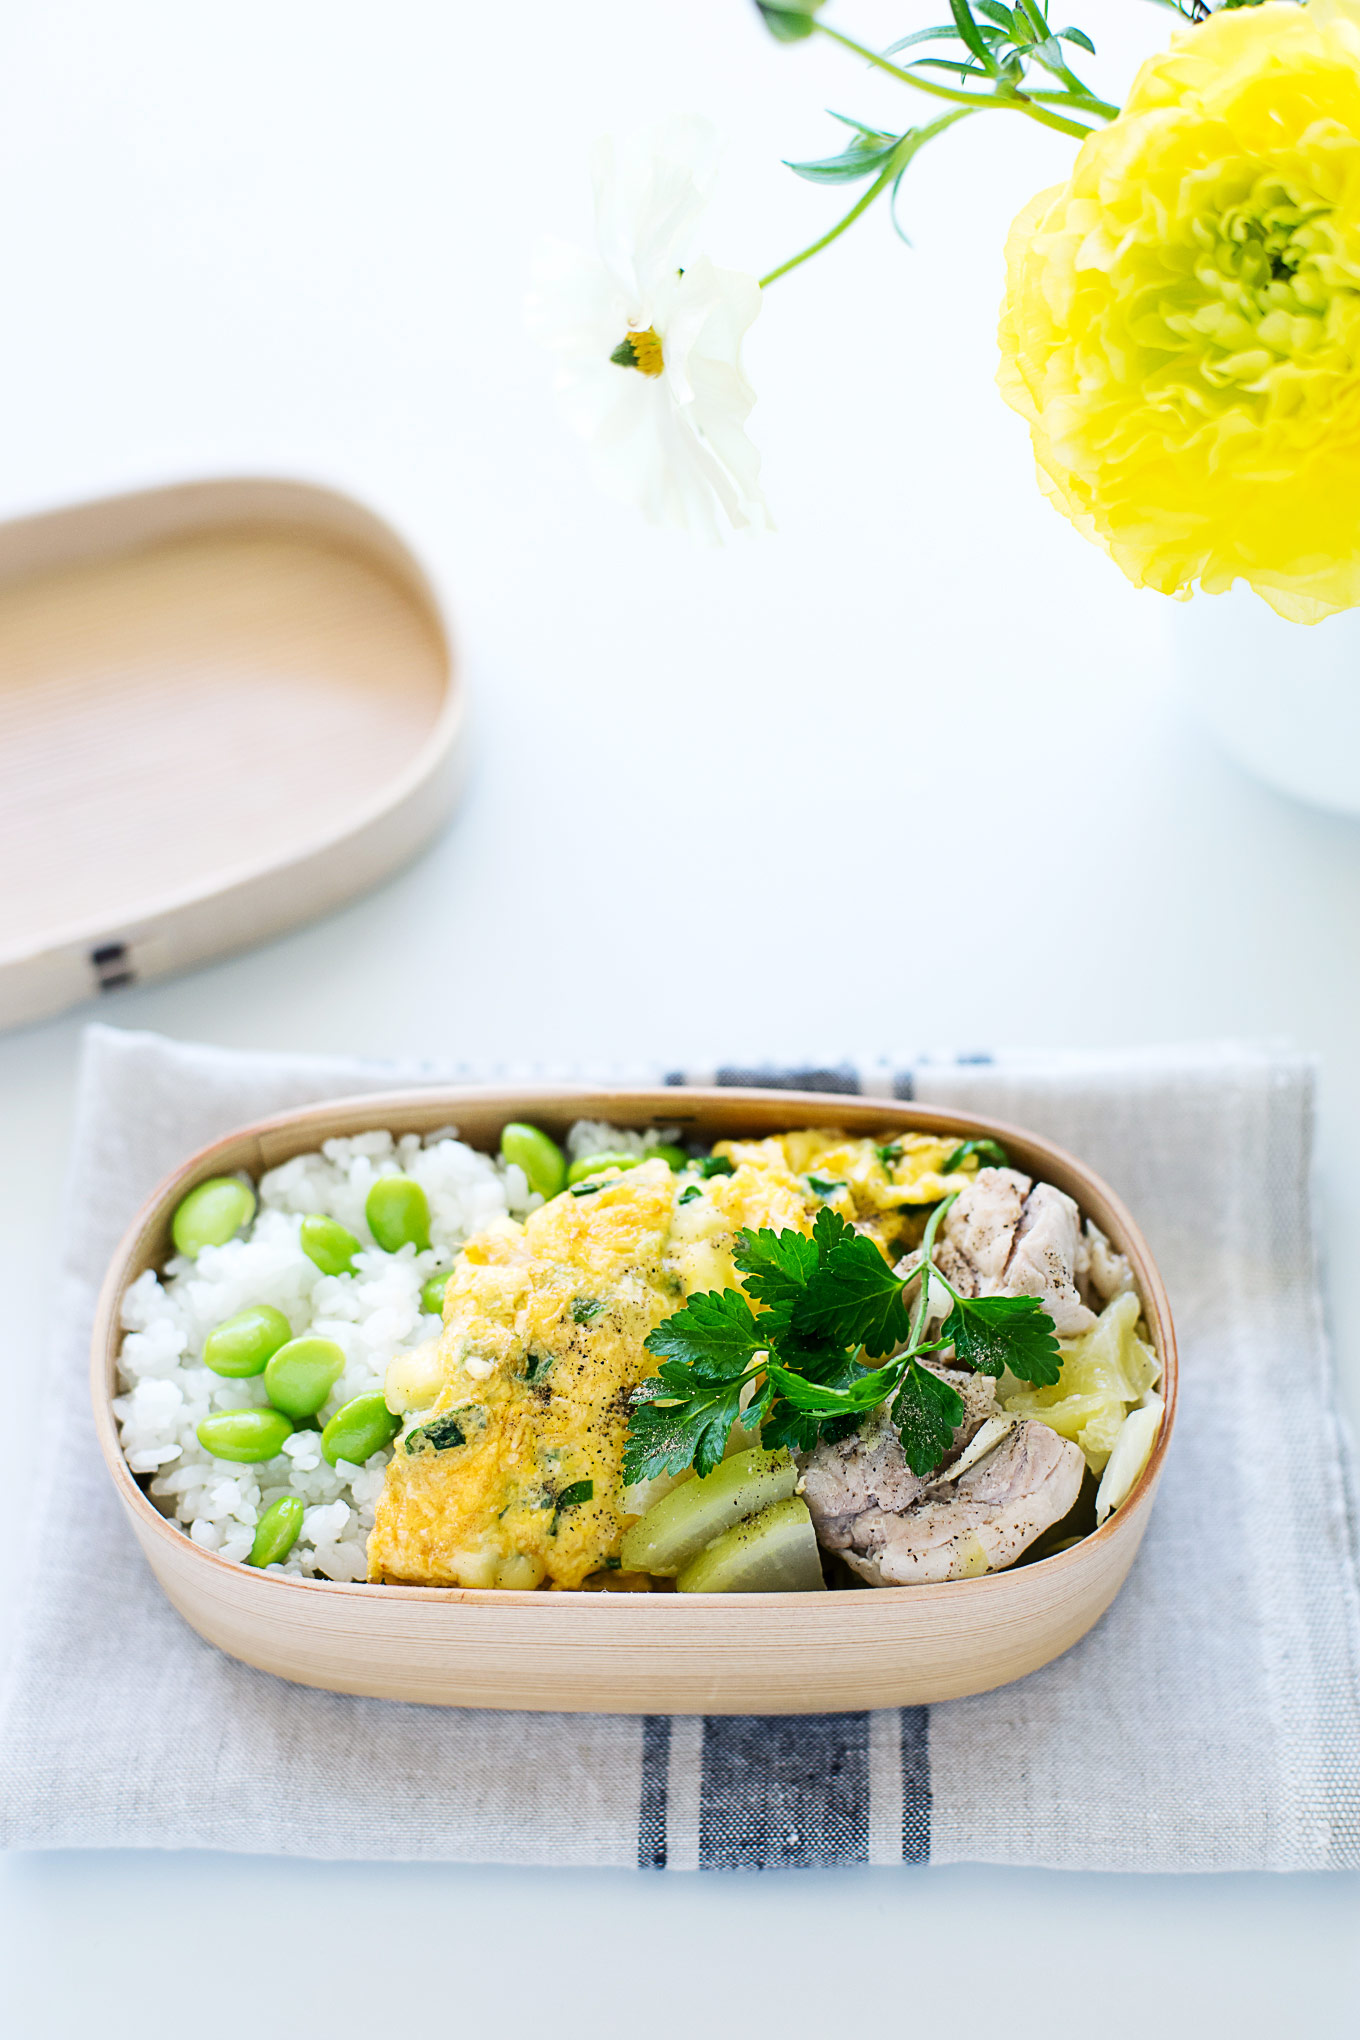 cheese-omelette-magewappa-bento-4